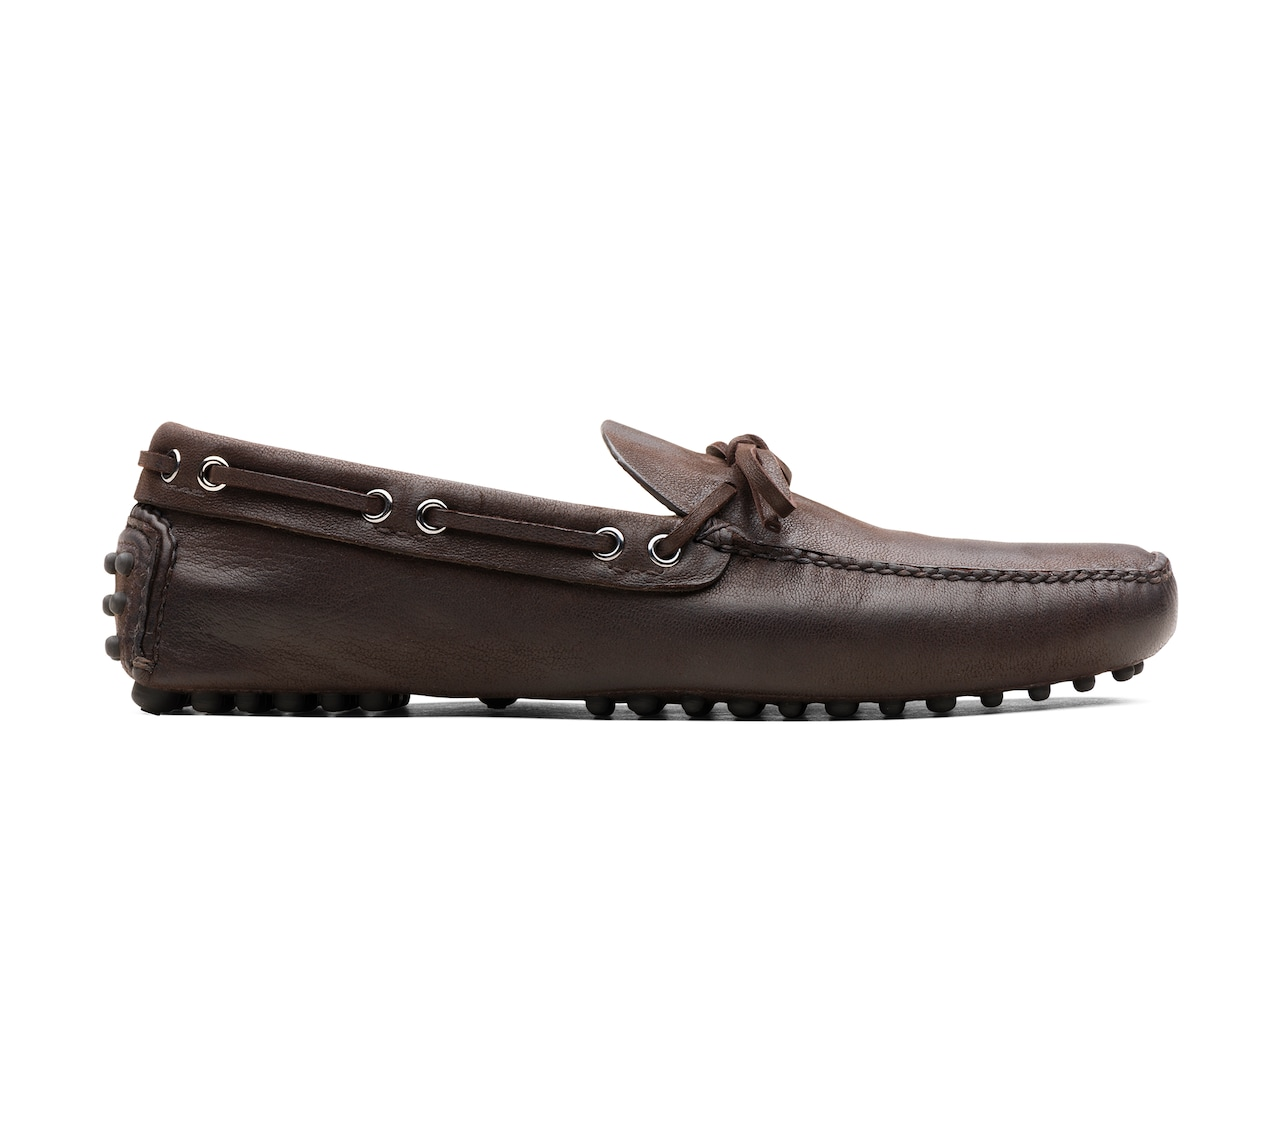 SOFT ANTIQUE GOAT LEATHER DRIVING SHOES BROWN